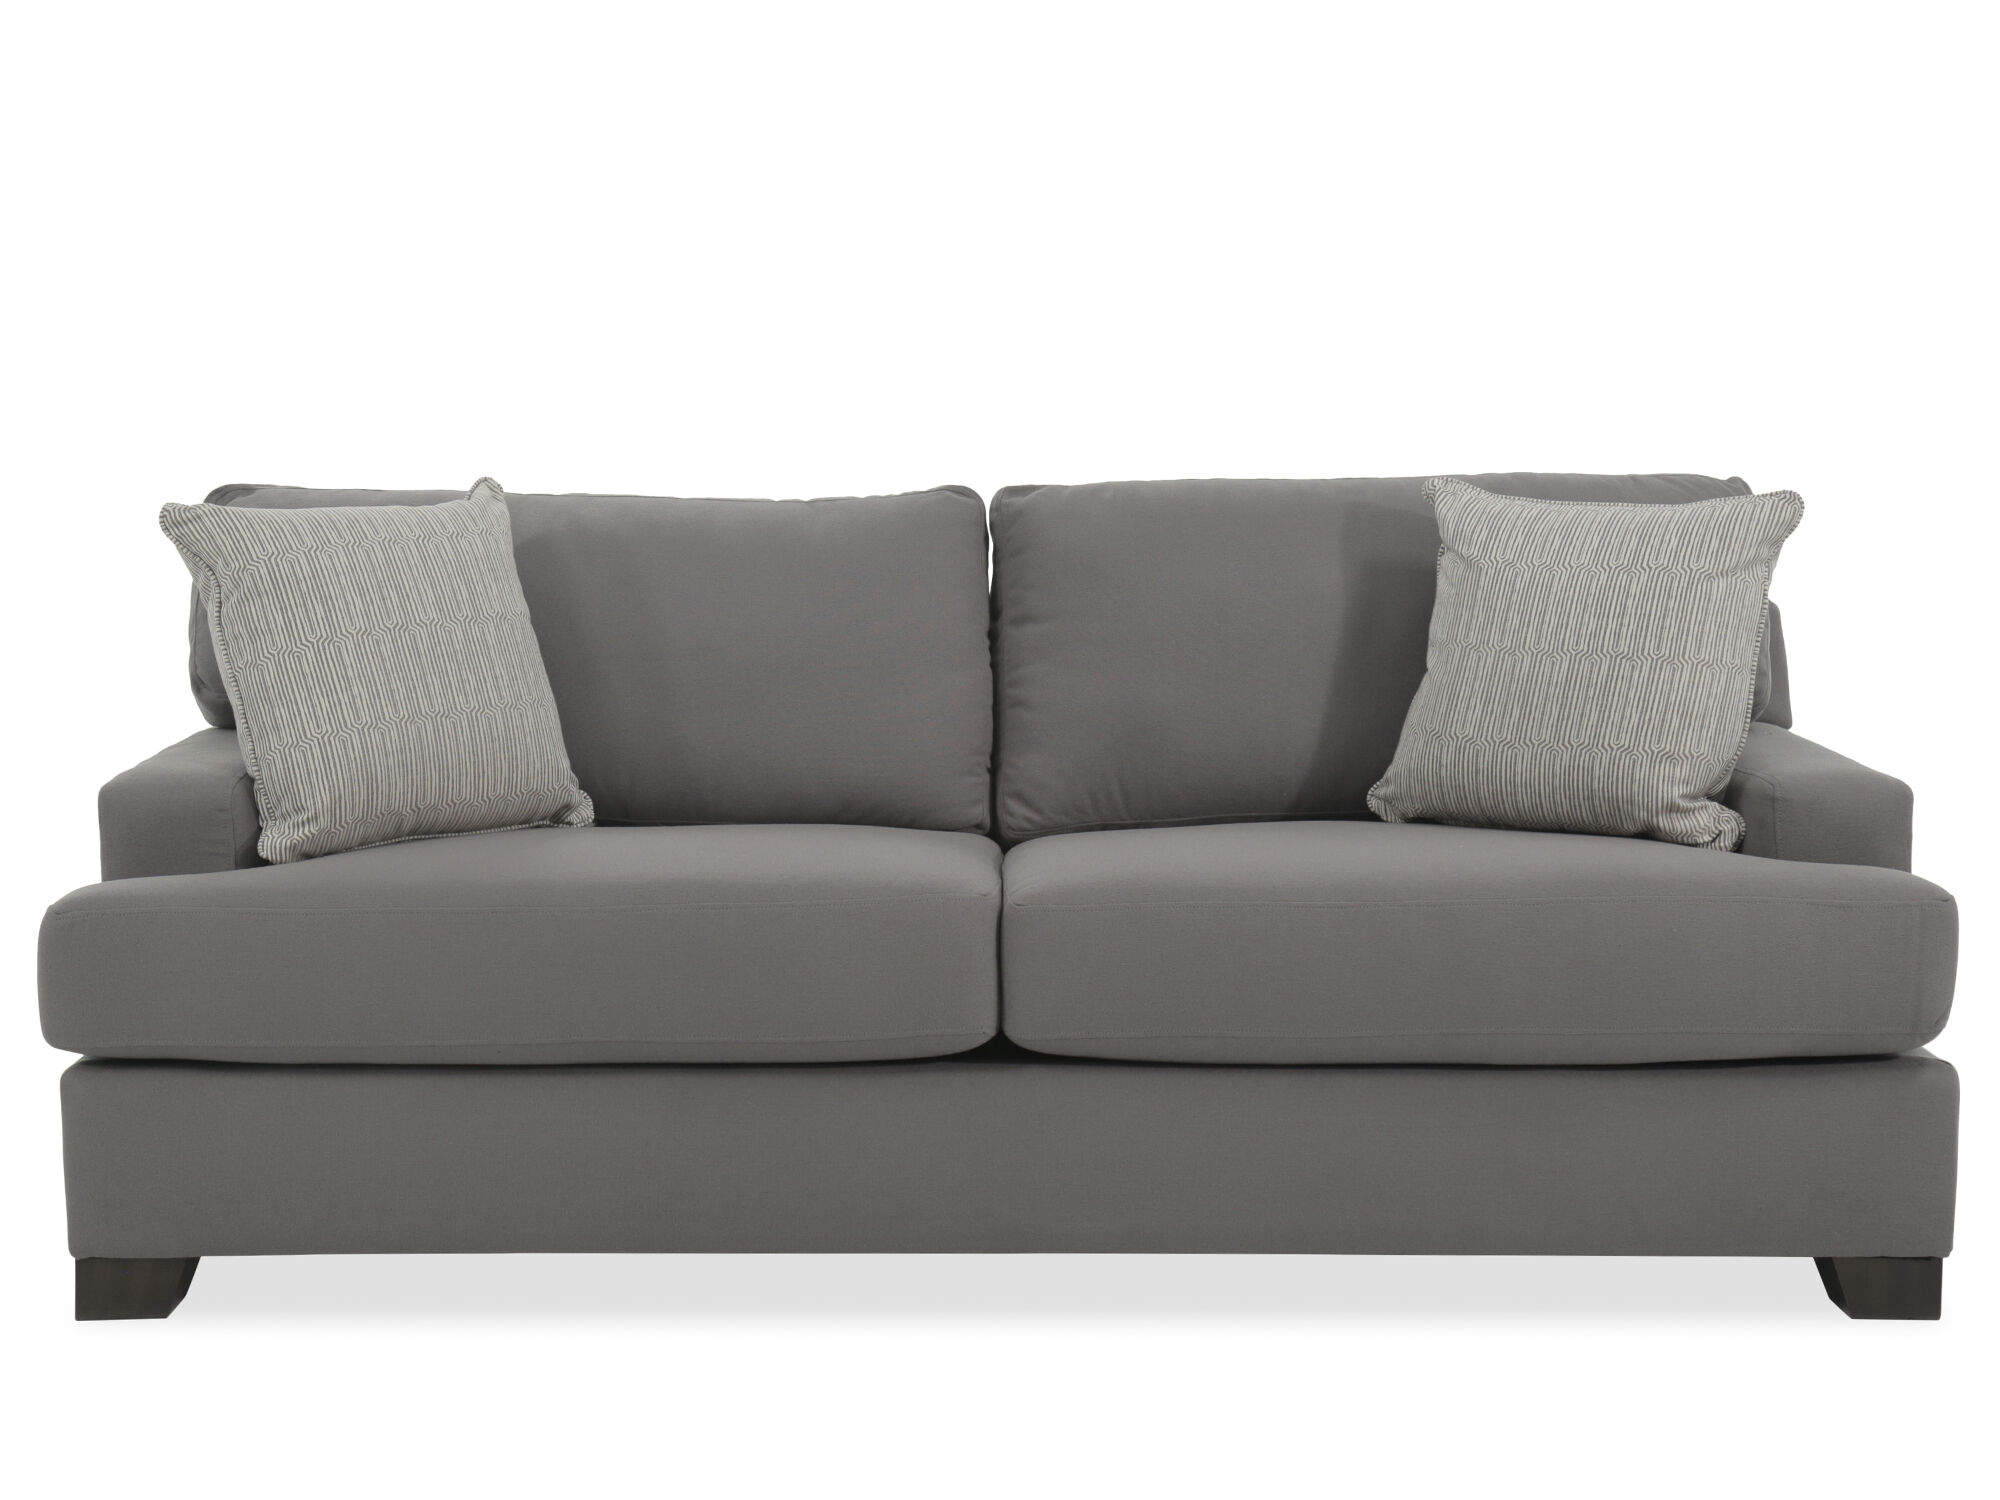 Transitional 87 Sofa In Gray Mathis Brothers Furniture